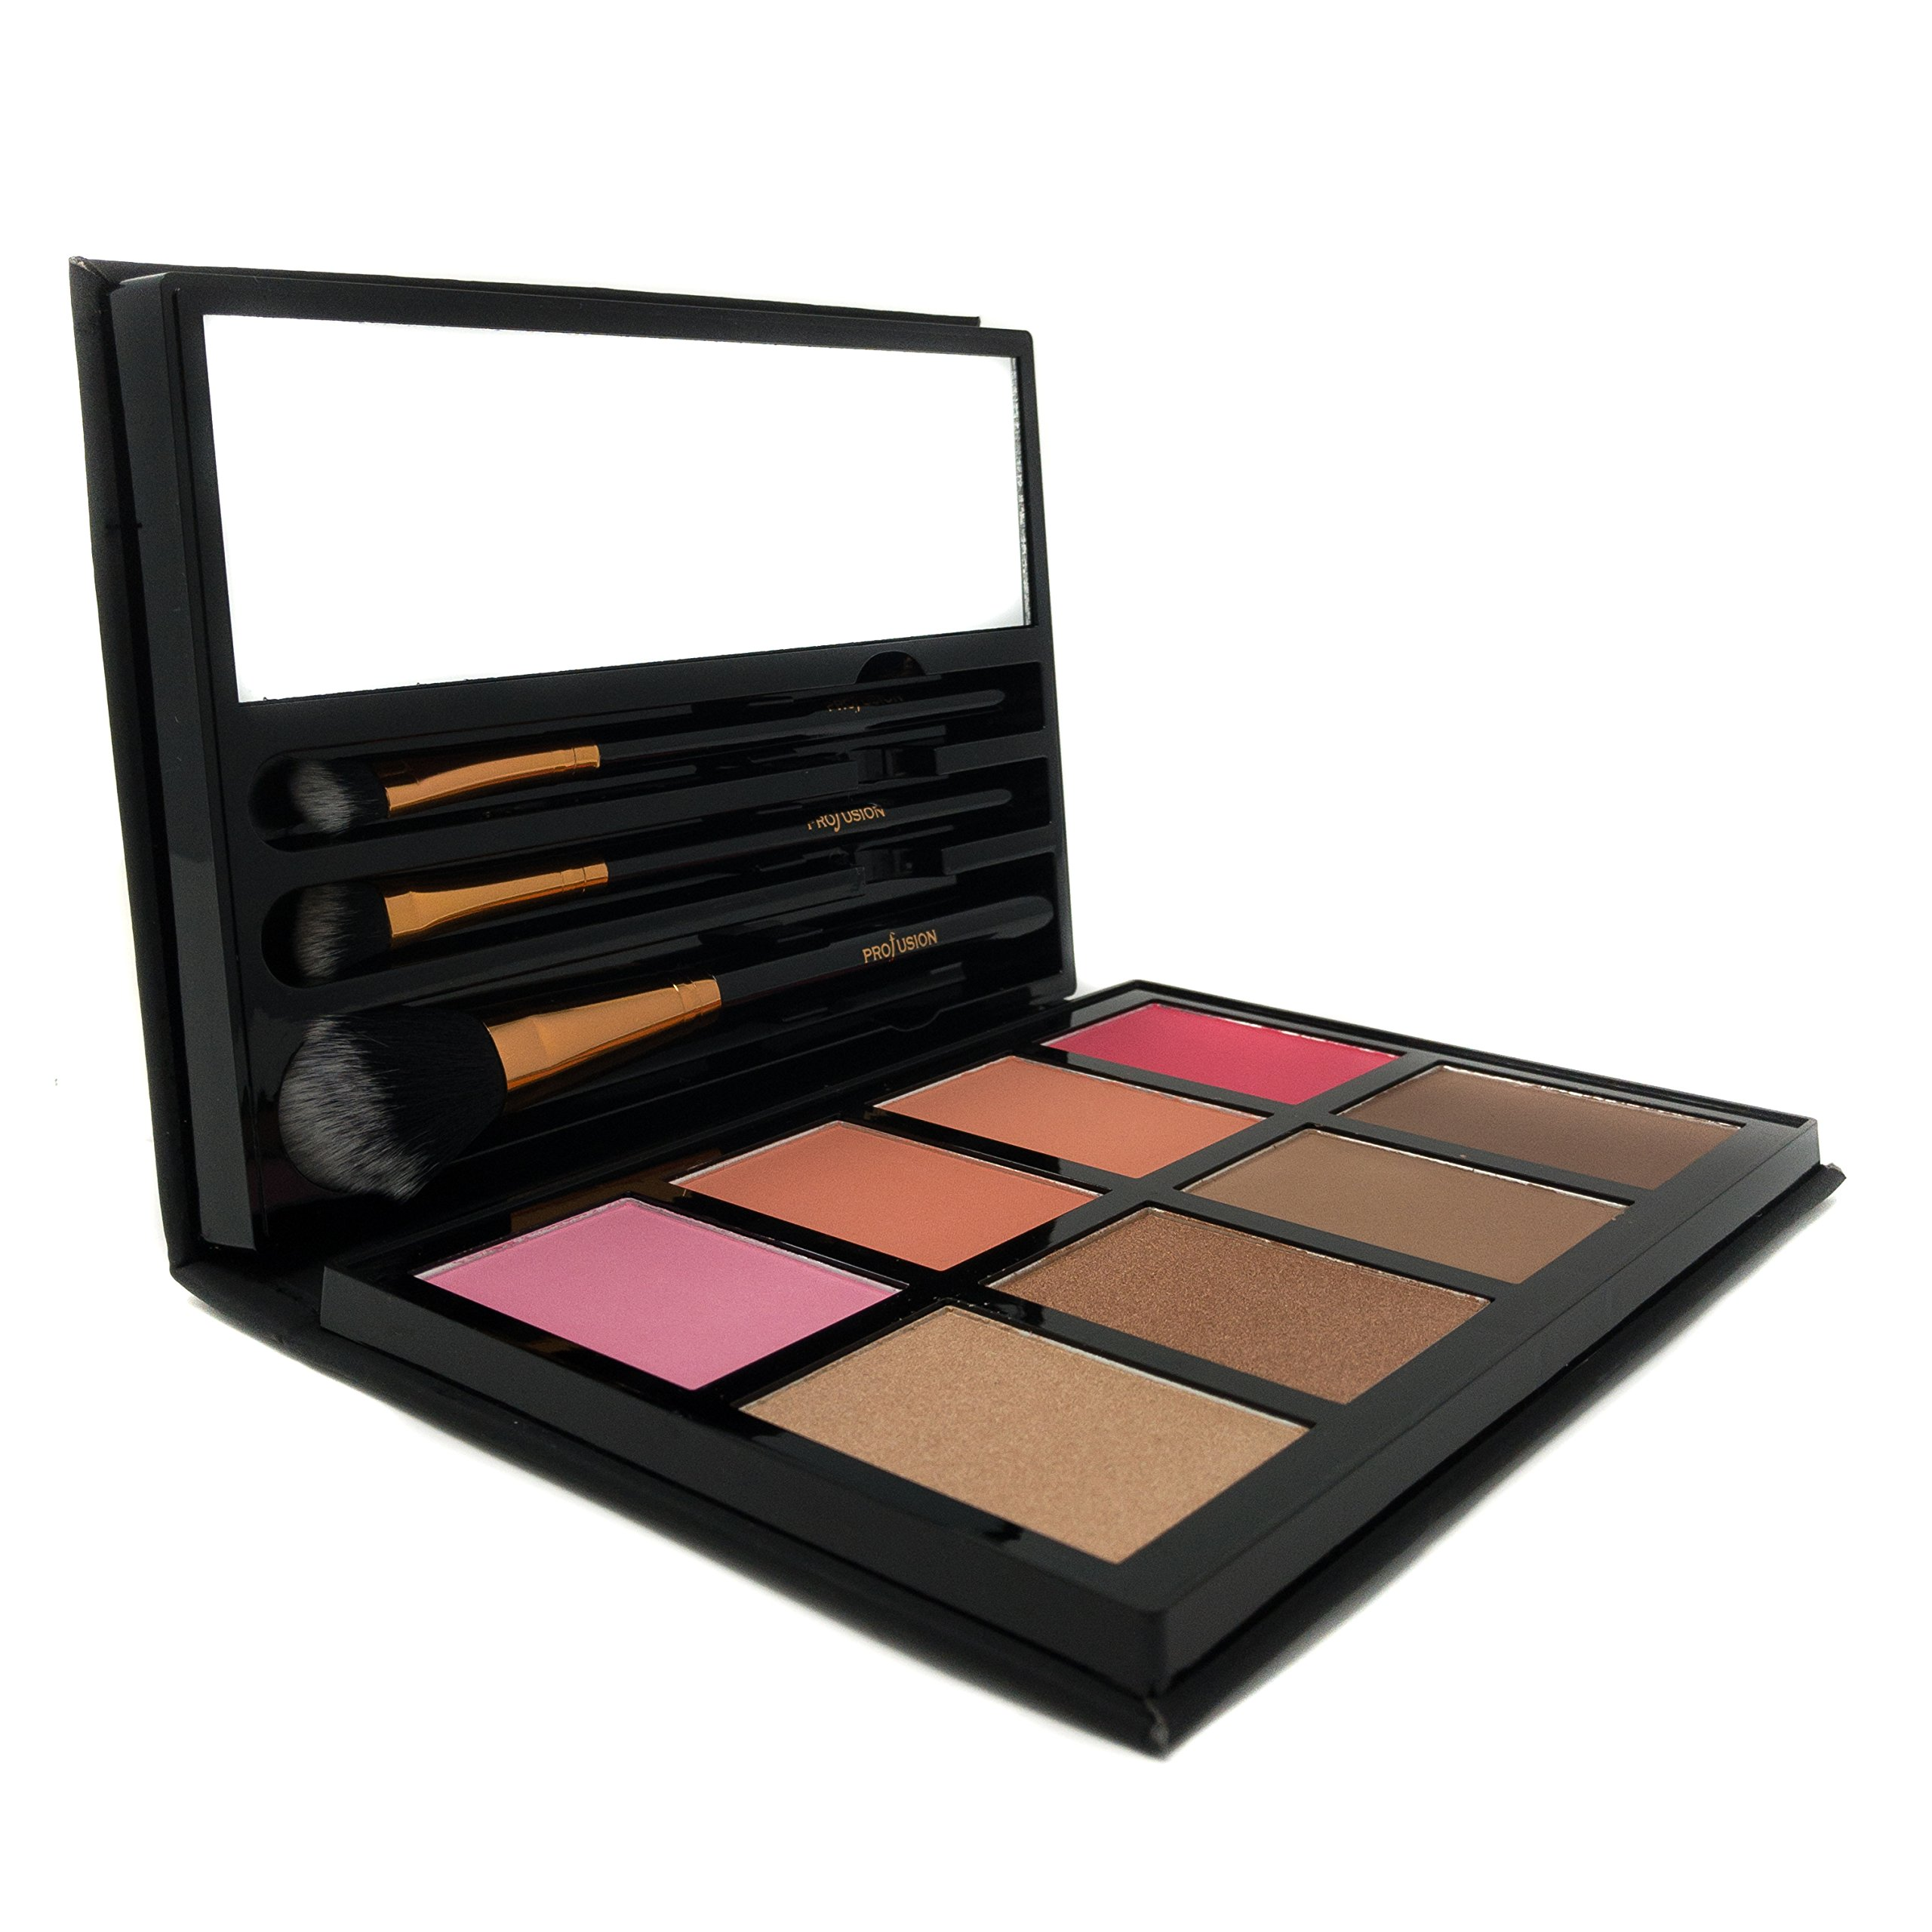 Profusion Cosmetics - Blush & Bronzer - Professional 8 Color Palette Makeup Kit Blush Highlighter Bronzer - Nude Highlight Champagne Highlight Light Bronze Shadow Bronze Pink Warm Peach Rose Pink